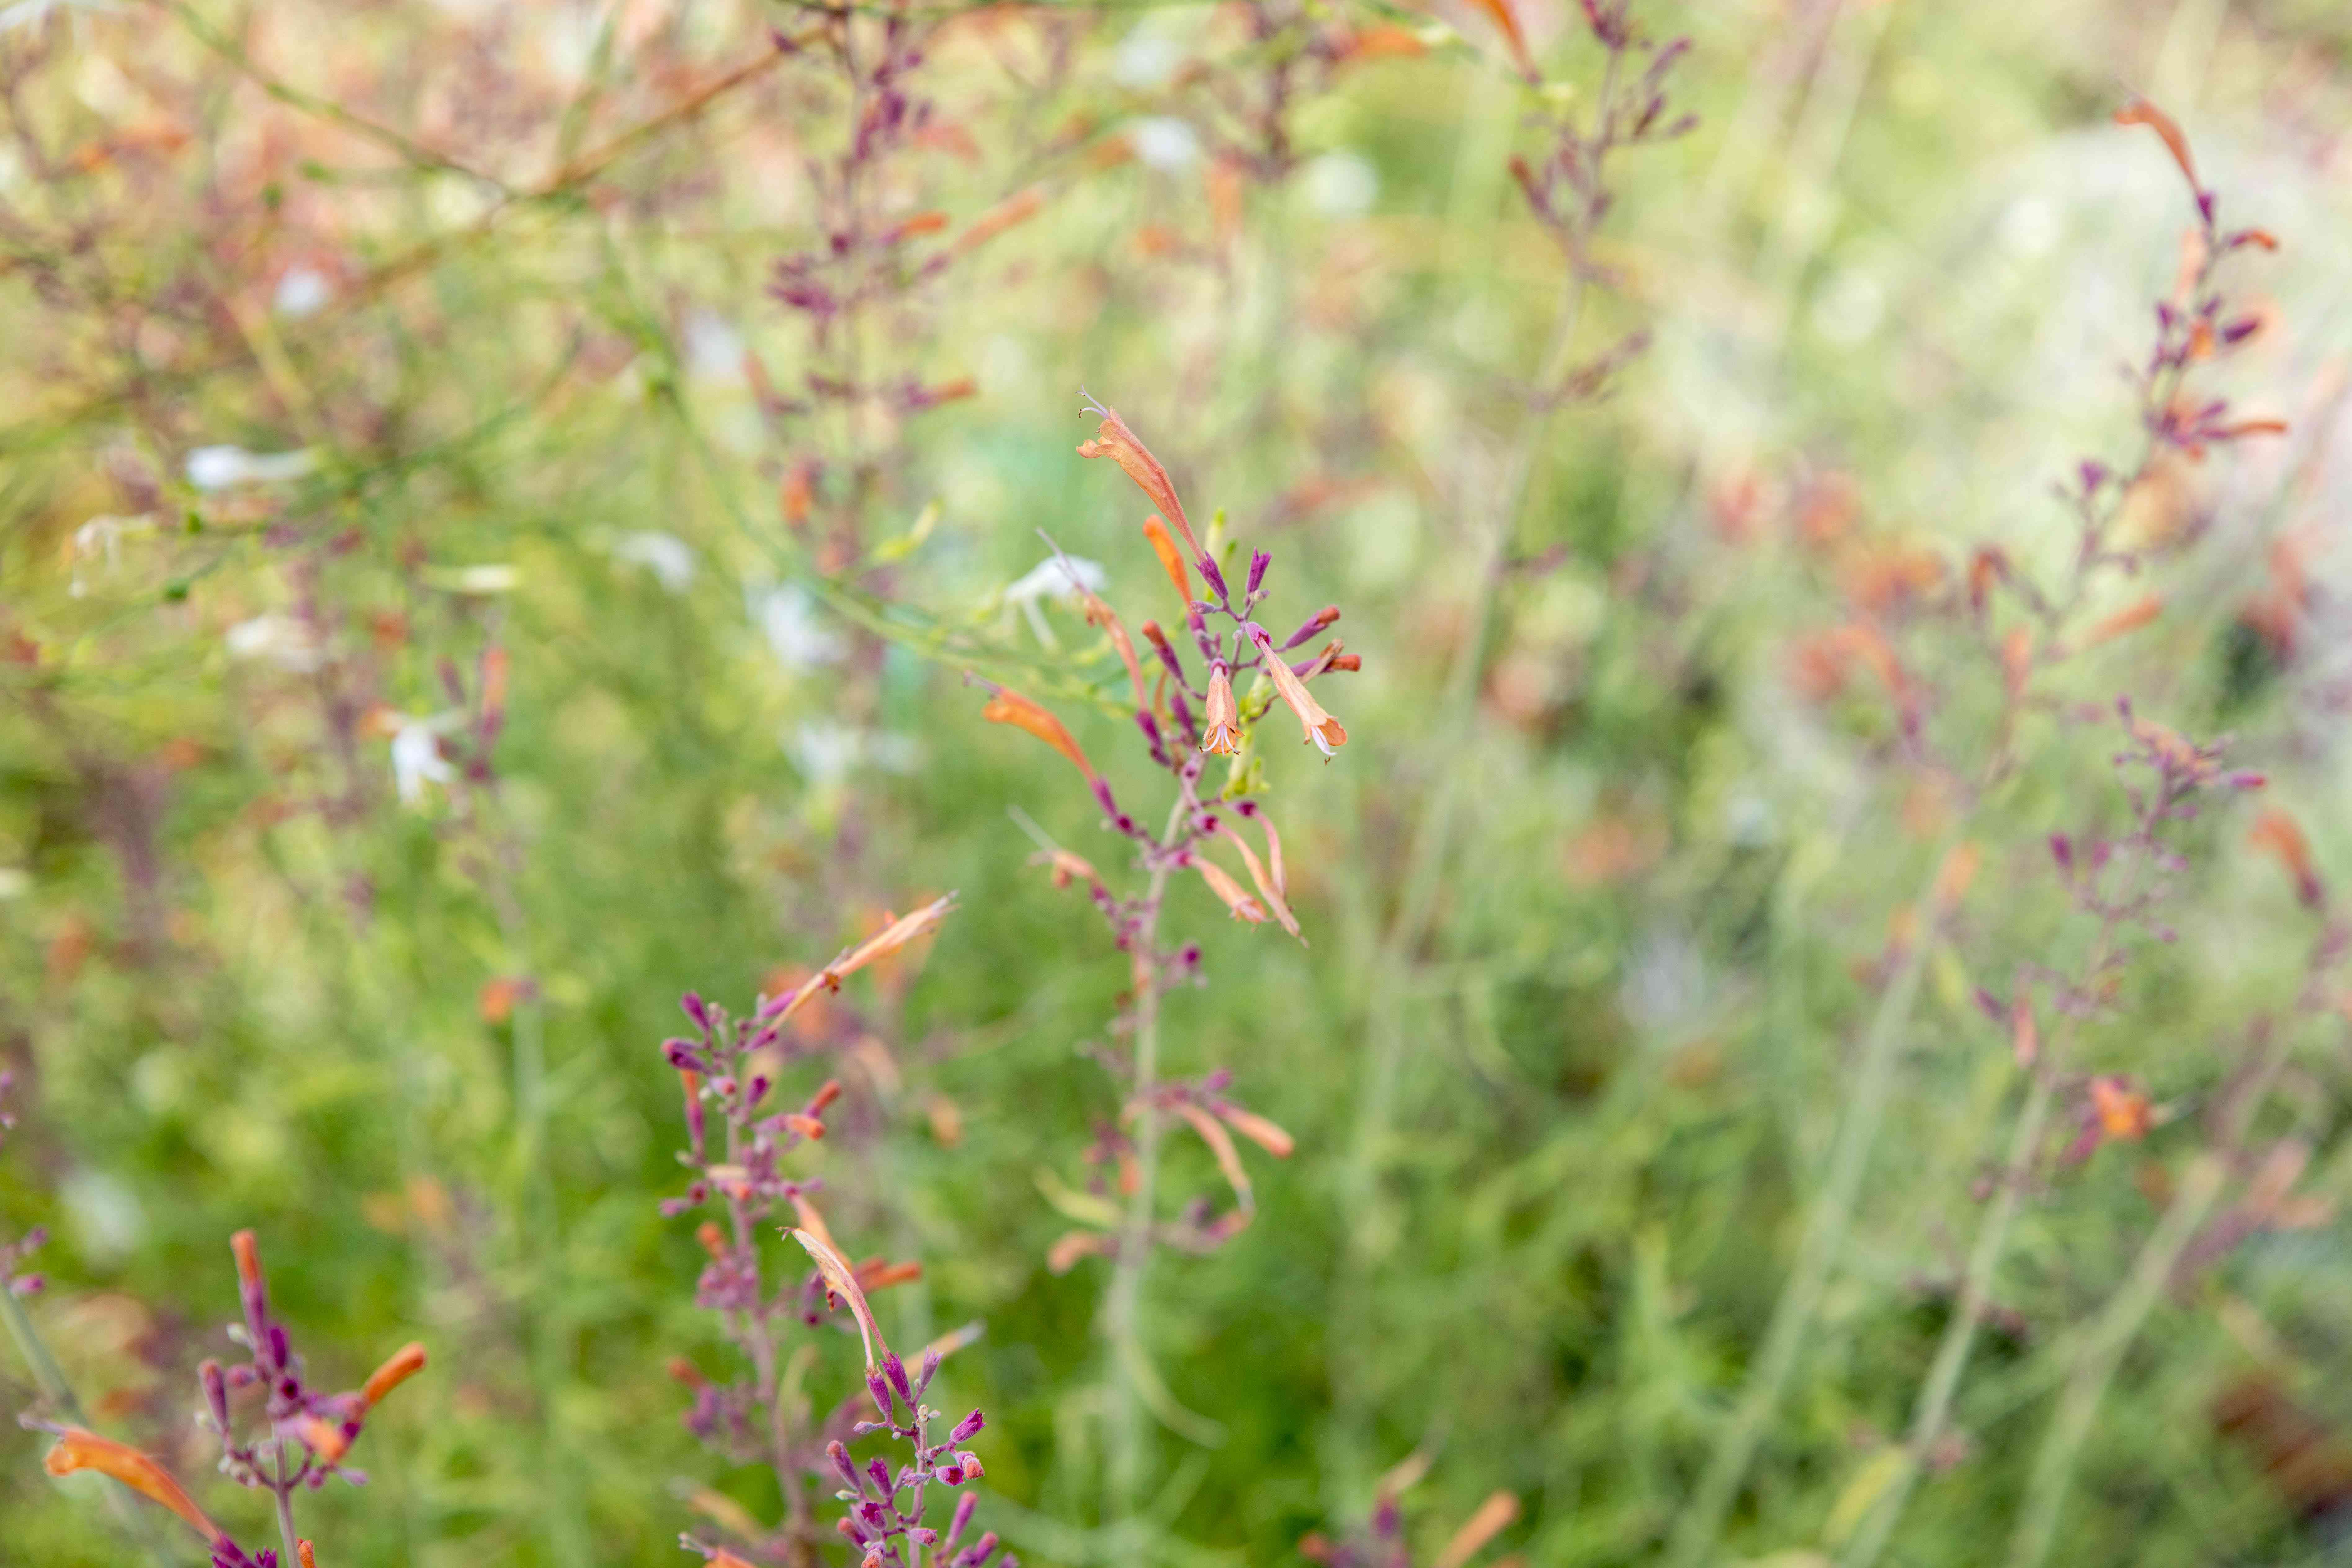 Sunset hyssop flowers on thin stems with orange trumpet-shaped blooms and pink buds